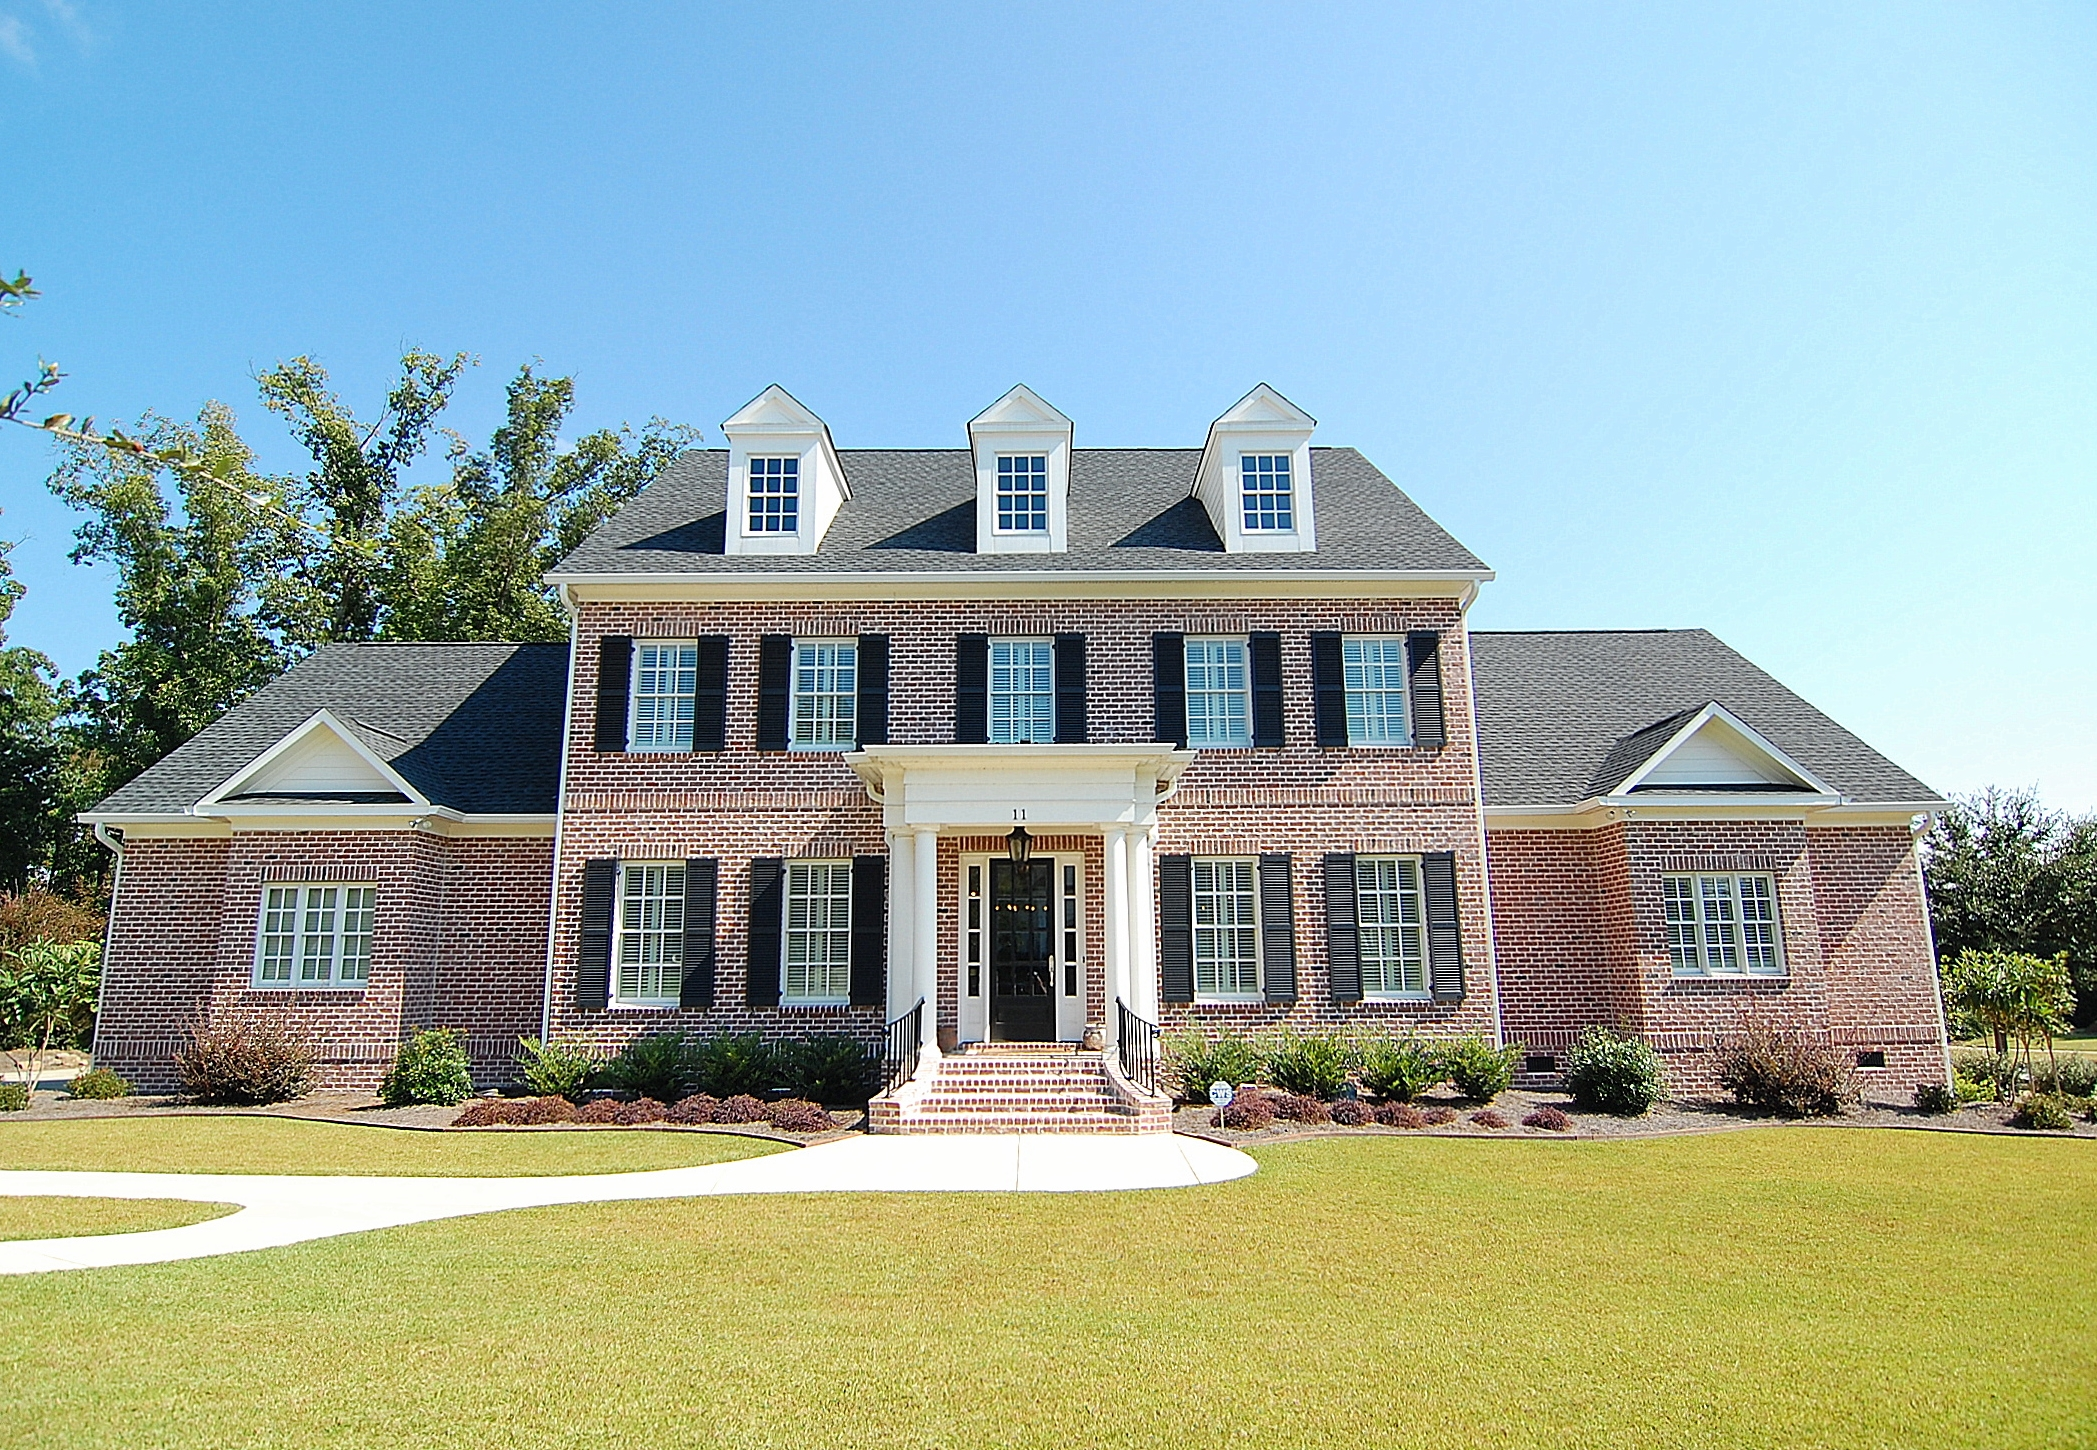 Plan Name or # The Gray Heron/  3,788  Bed: 4  Baths: 4.5  Sq.Ft.: 3,788  Garage: 2 Car Garage  ** Call for Floor Plan **